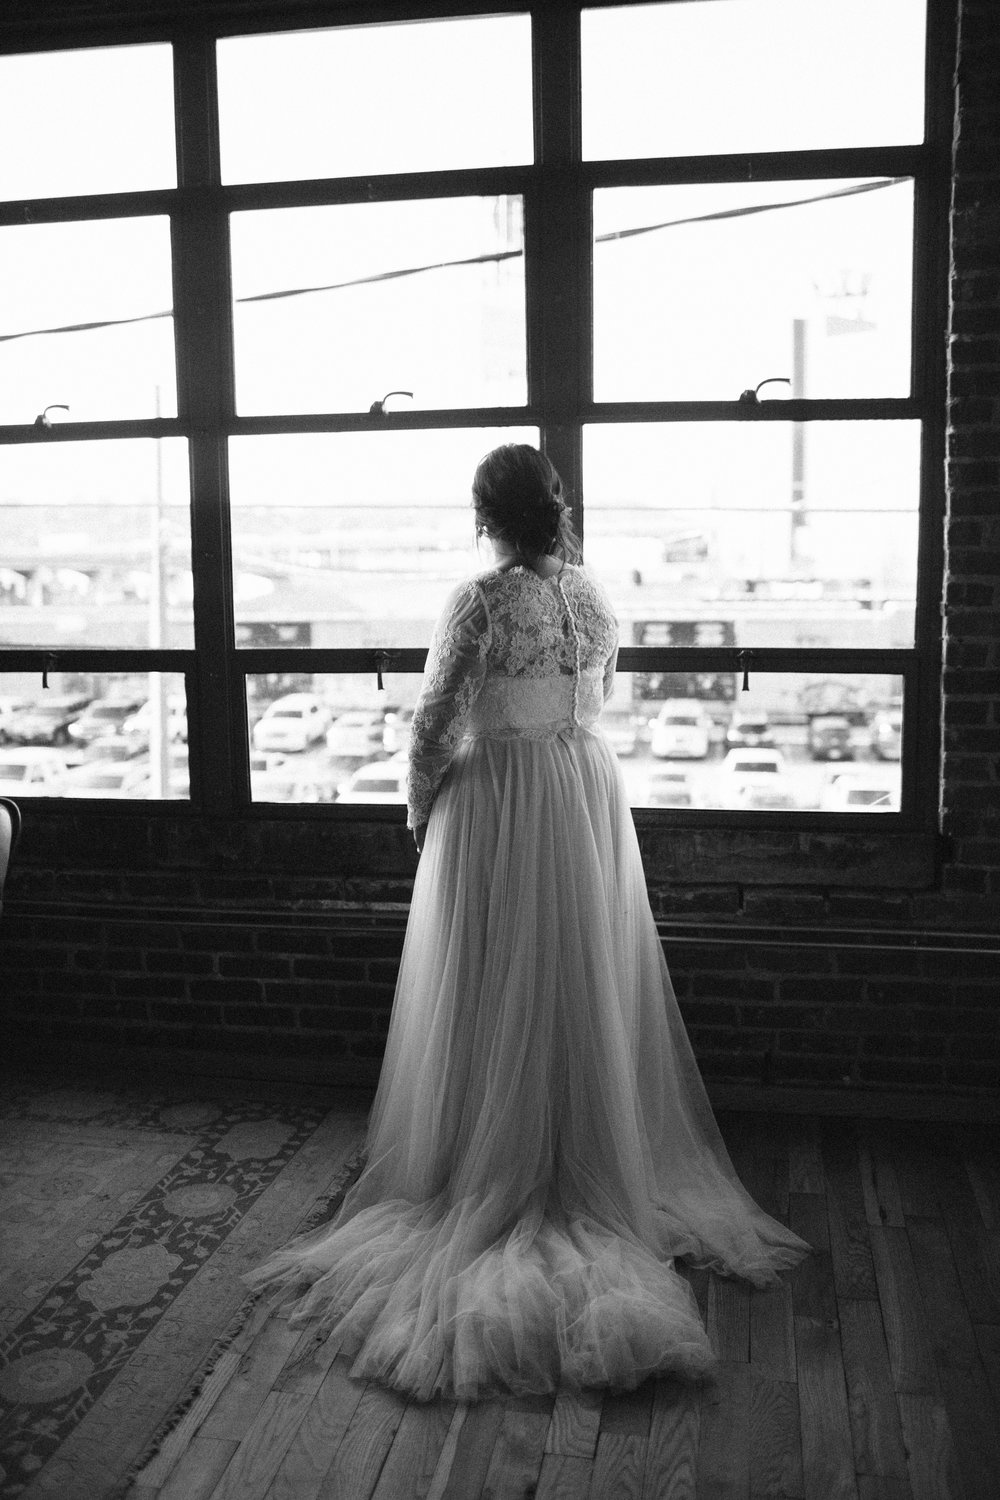 Lauren_Jeremy_Standard_Wedding_Knoxville_Abigail_Malone_Photography_FIlm-439.jpg